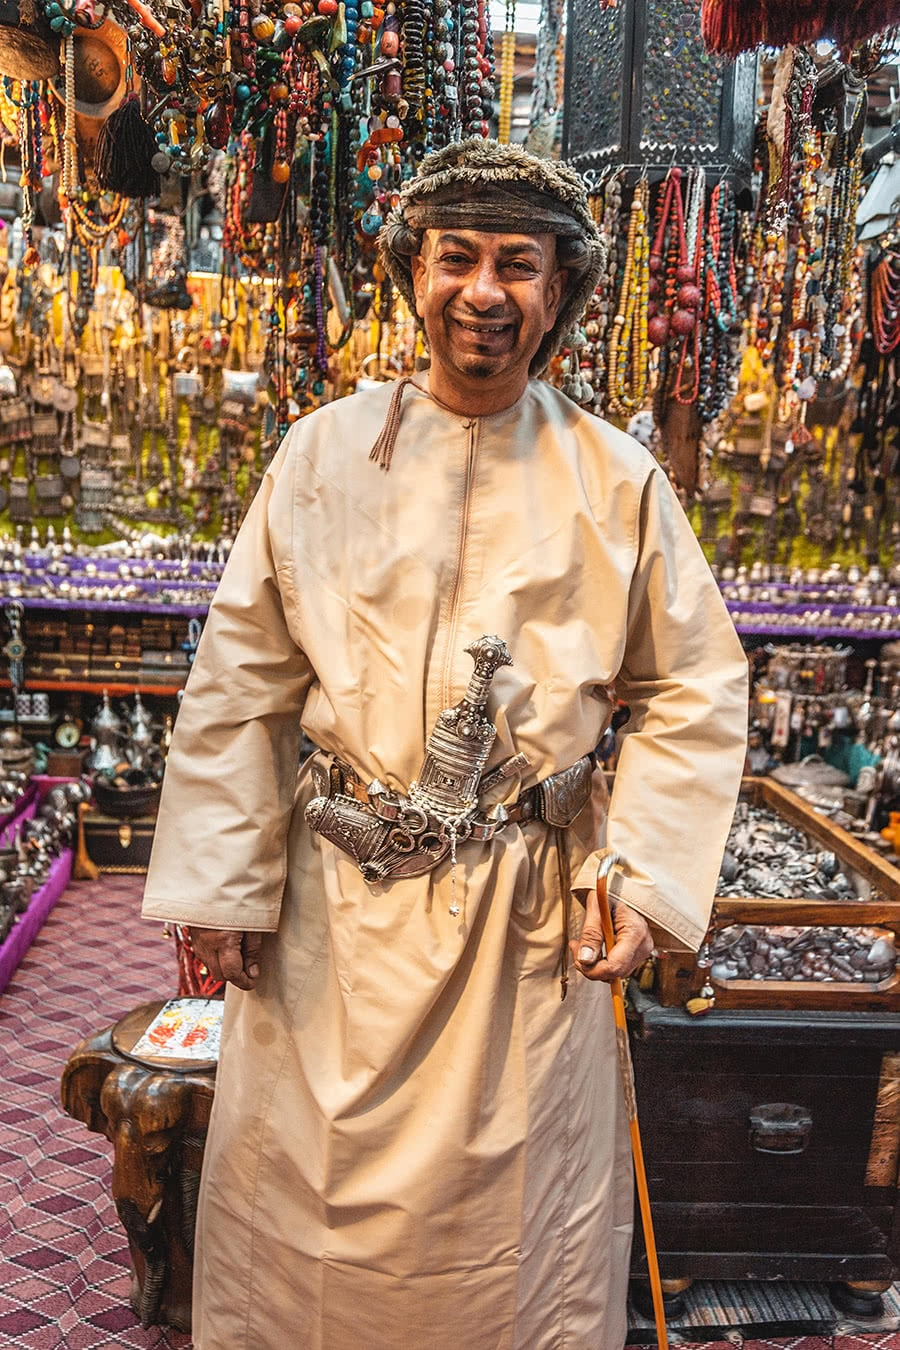 Vendor at the Mutrah Souq, Muscat, Oman.